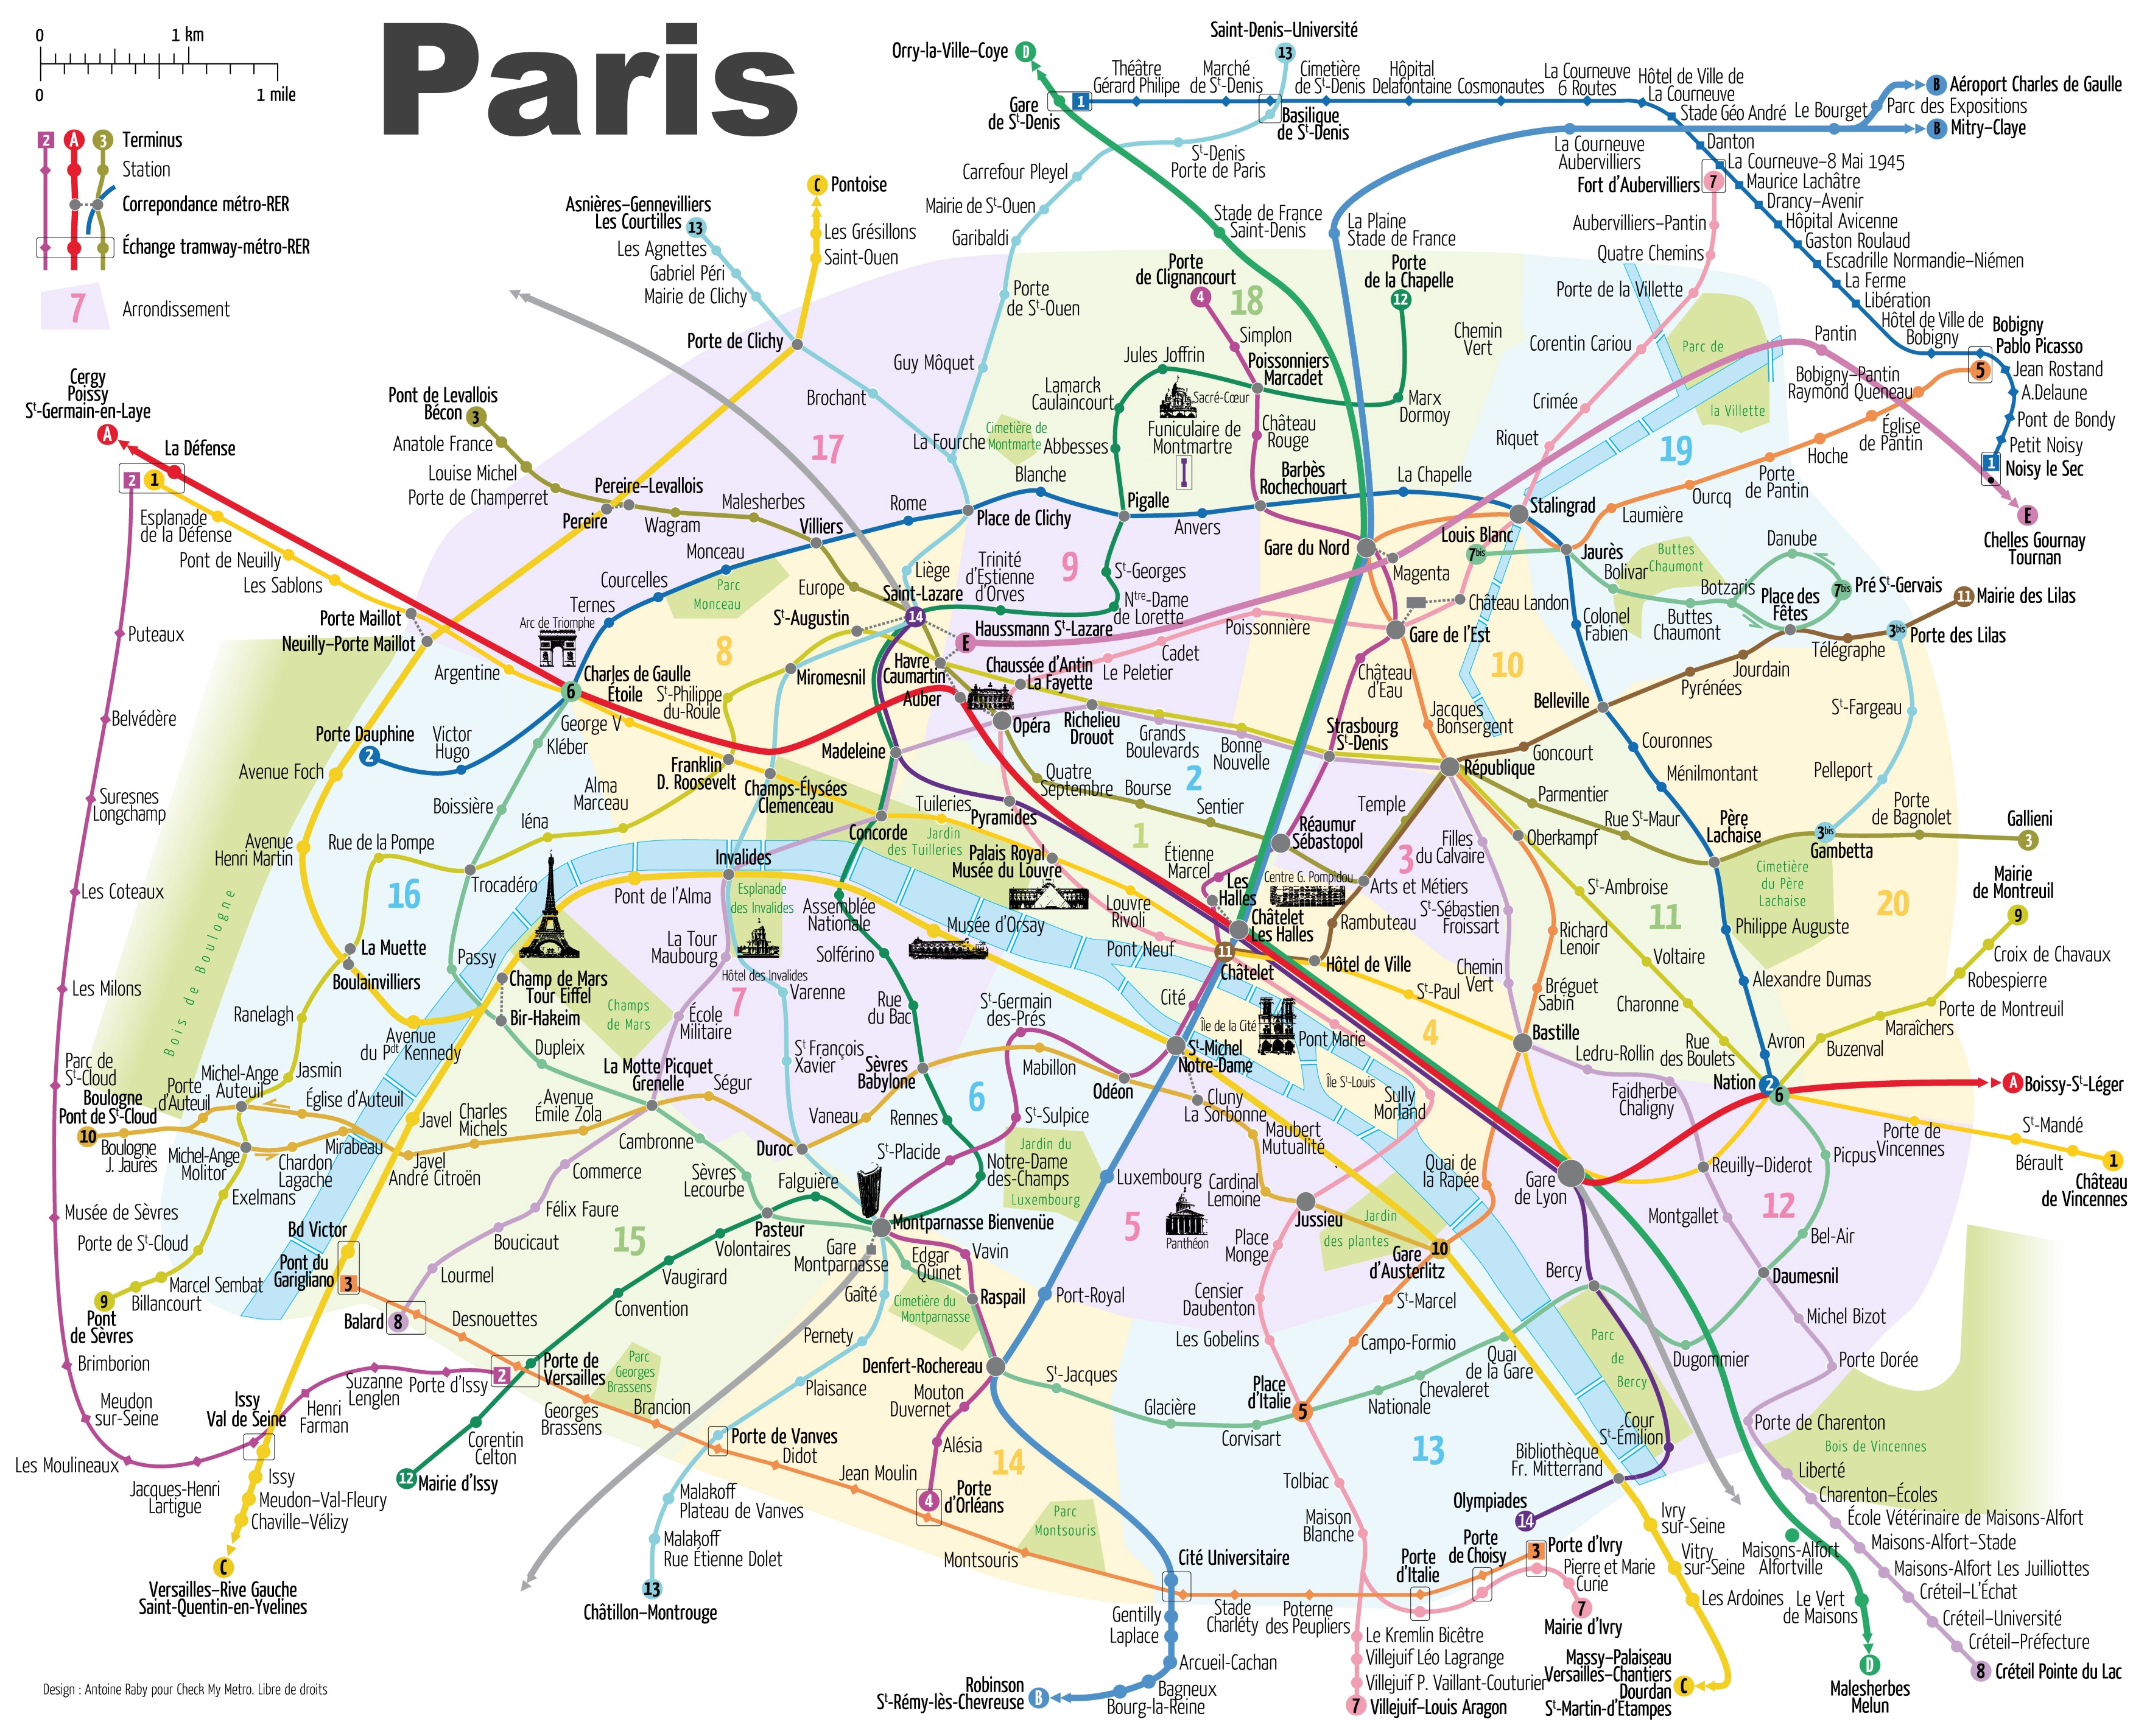 Paris Metro Map With Main Tourist Attractions